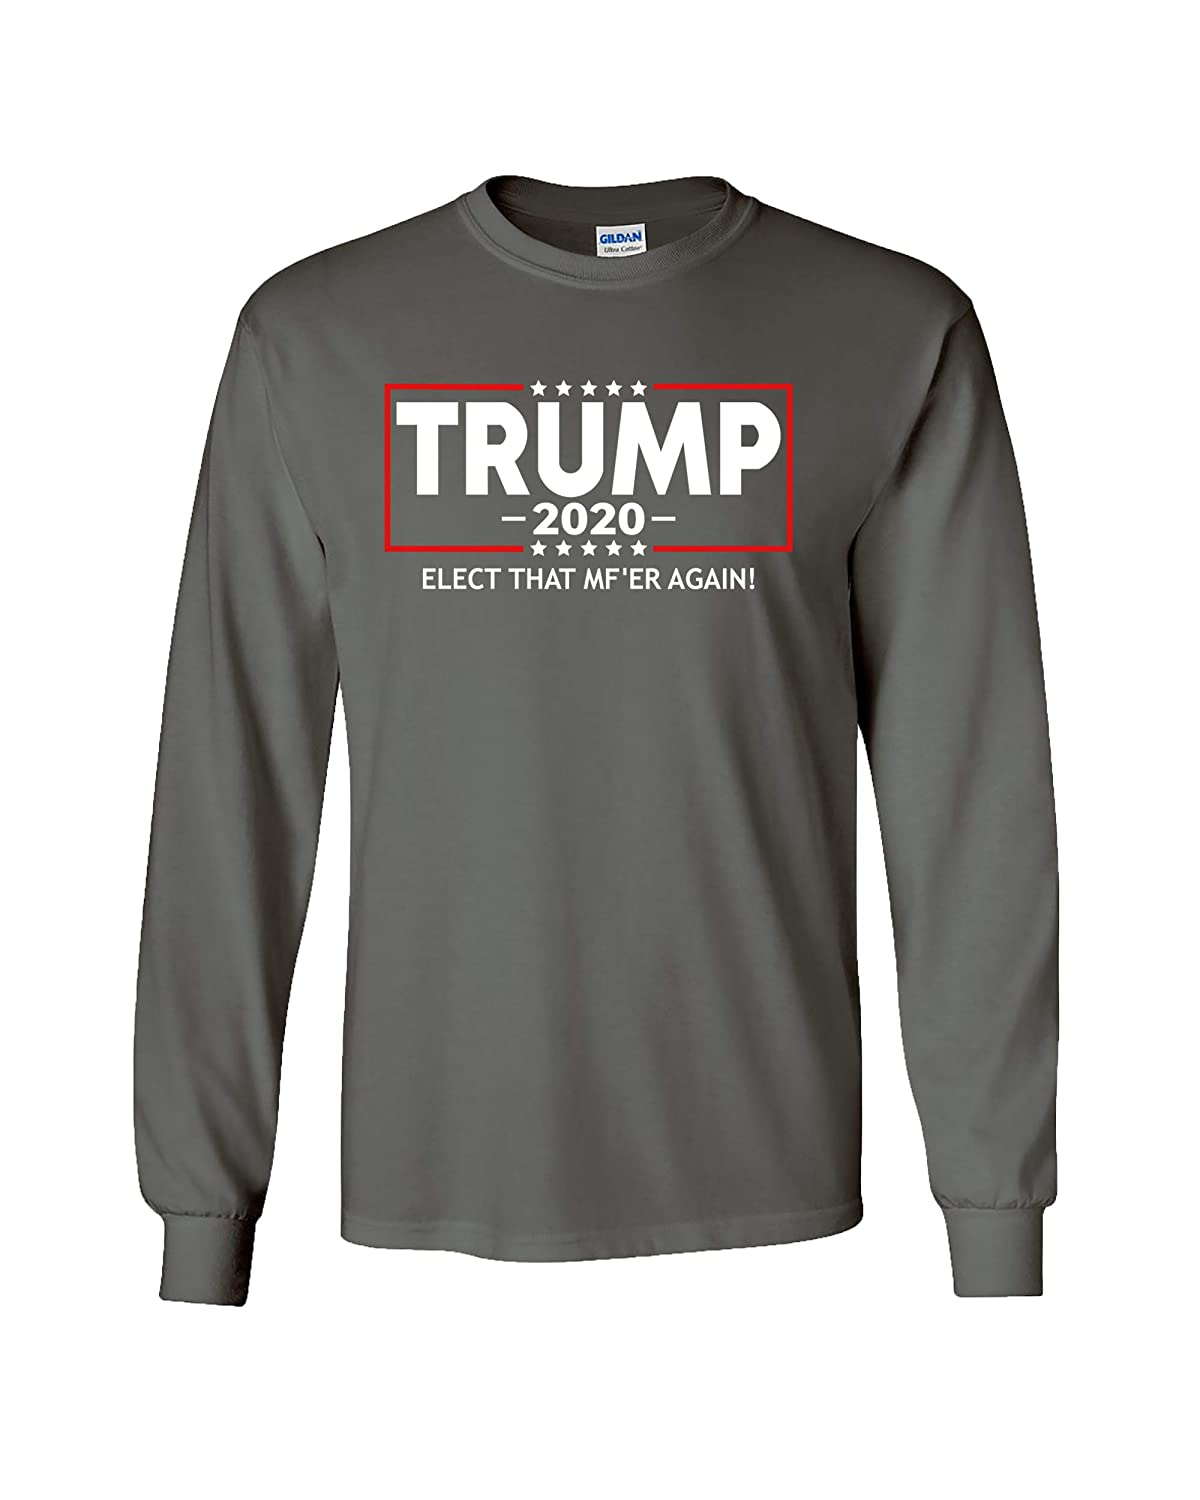 Political Trump 2020 Elect That MFer Again Adult Unisex Long Sleeve Shirt